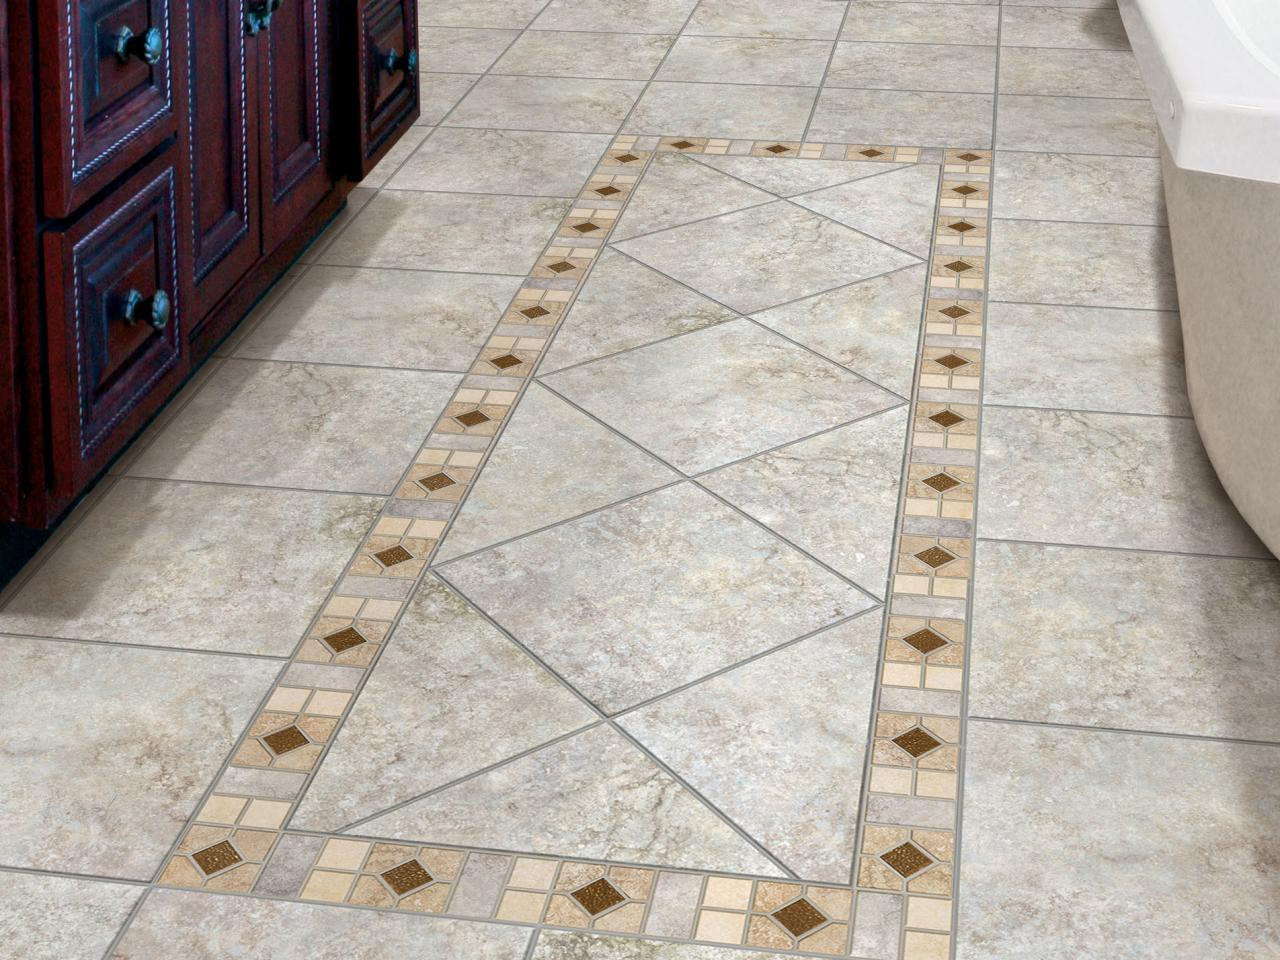 30 ideas for bathroom carpet floor tiles sp0241floor diamondss3x4hgndhgtvcom1280960 3fa7894d2a4d29374ef4cae476dcd01a 60biancomini 94c262e98b027369f0c7b60af39226ef dailygadgetfo Images